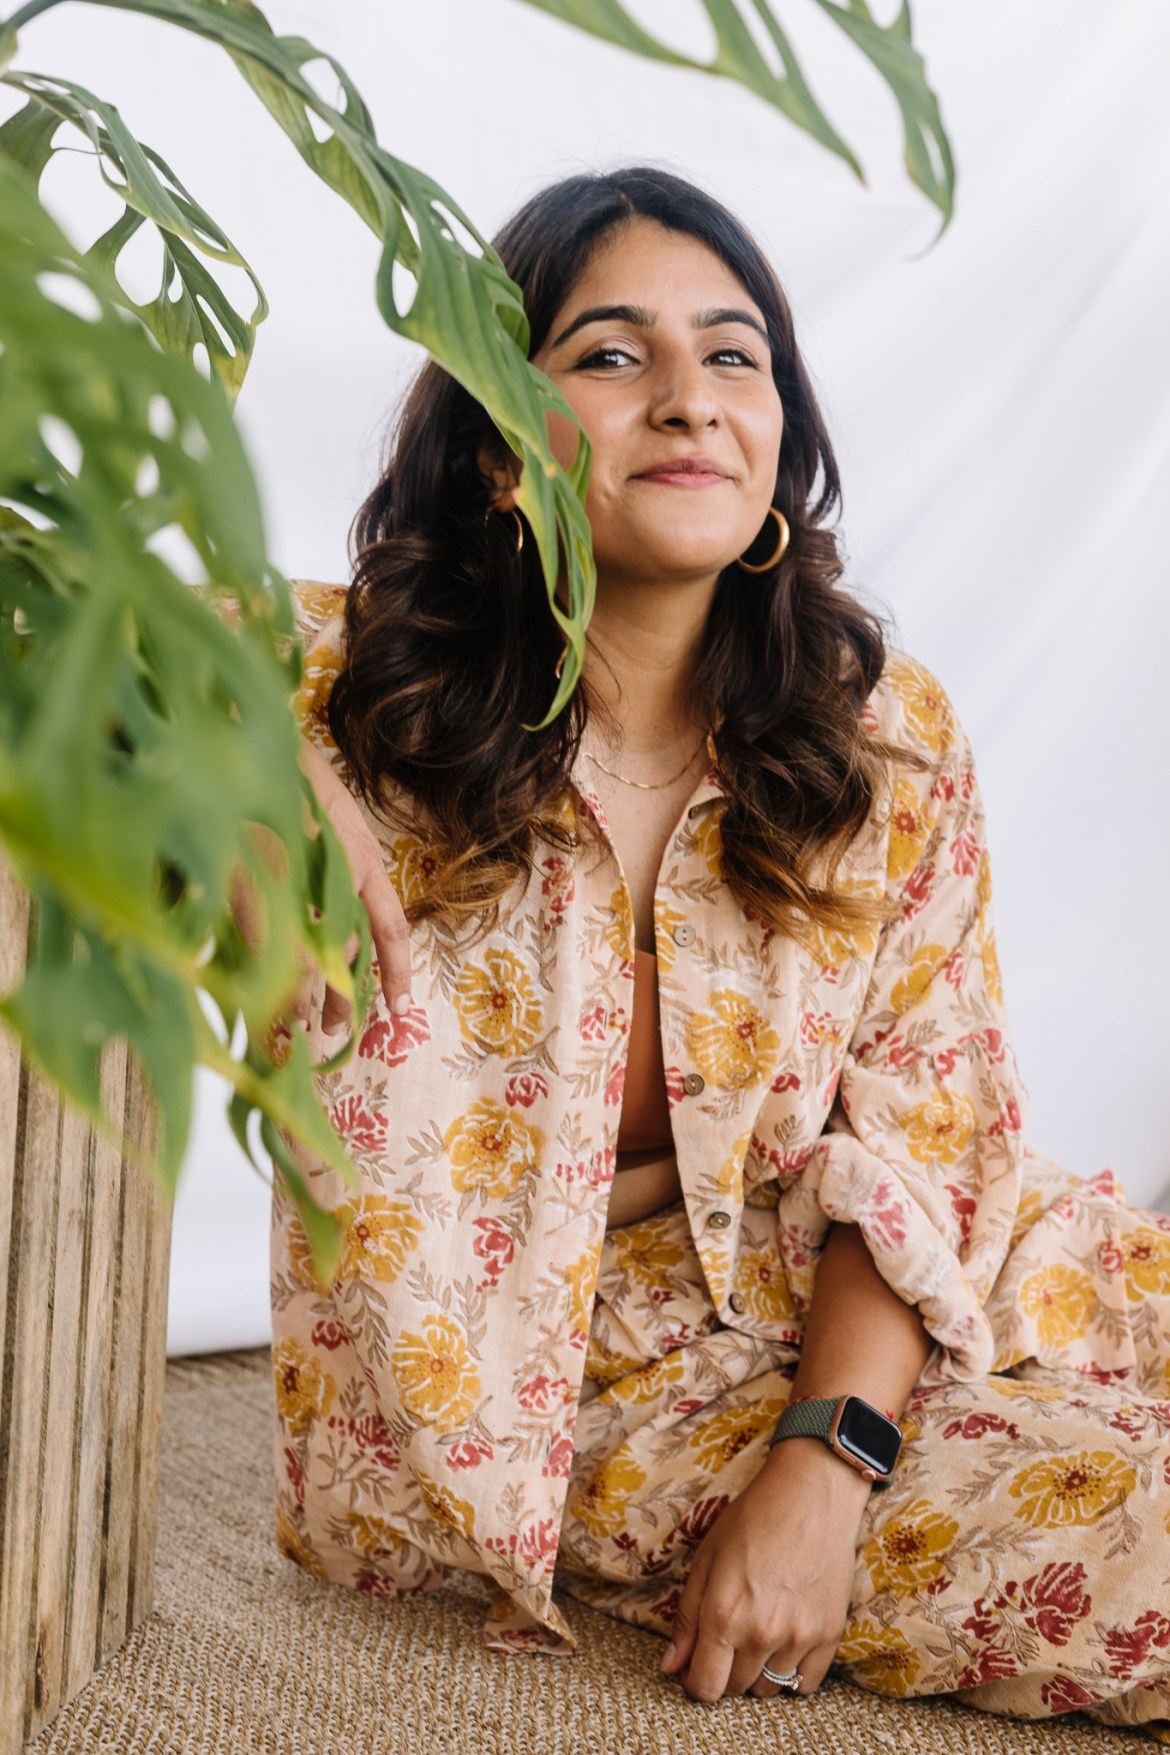 Mahima Gujral, founder of Sui, believes in celebrating nature through fashion